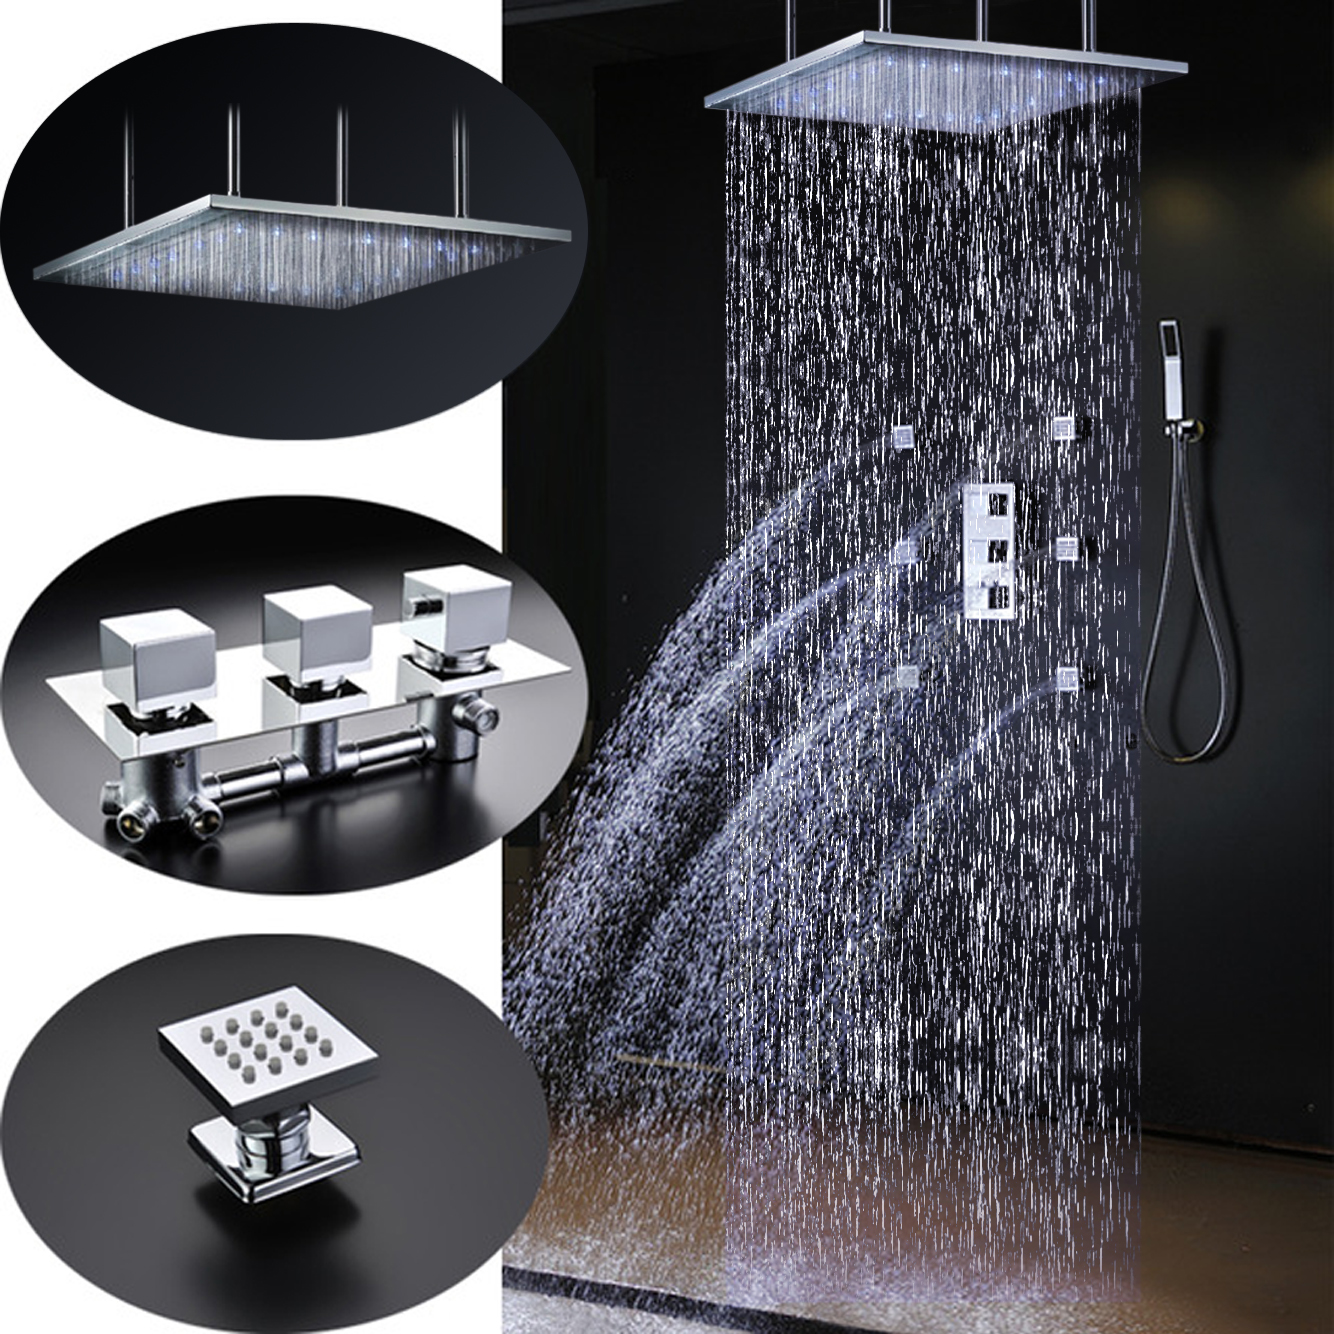 "Sicily 20"" * 40"" Large Chrome LED Rain Shower Head with Body Jets & Handheld Shower"